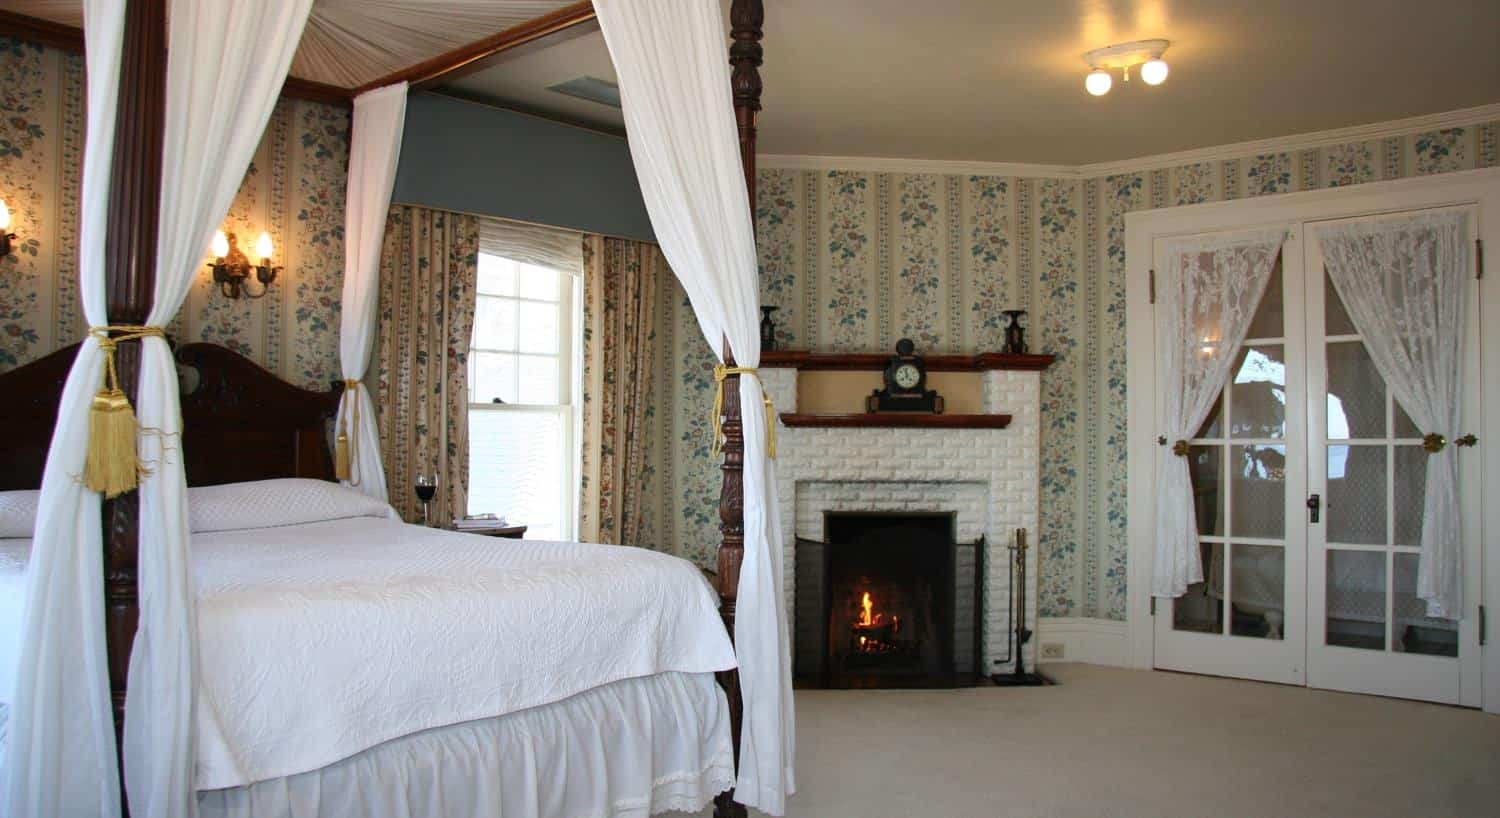 Spacious Parke guest room with carpeting, windows, French doors, corner fireplace and beautiful canopy bed